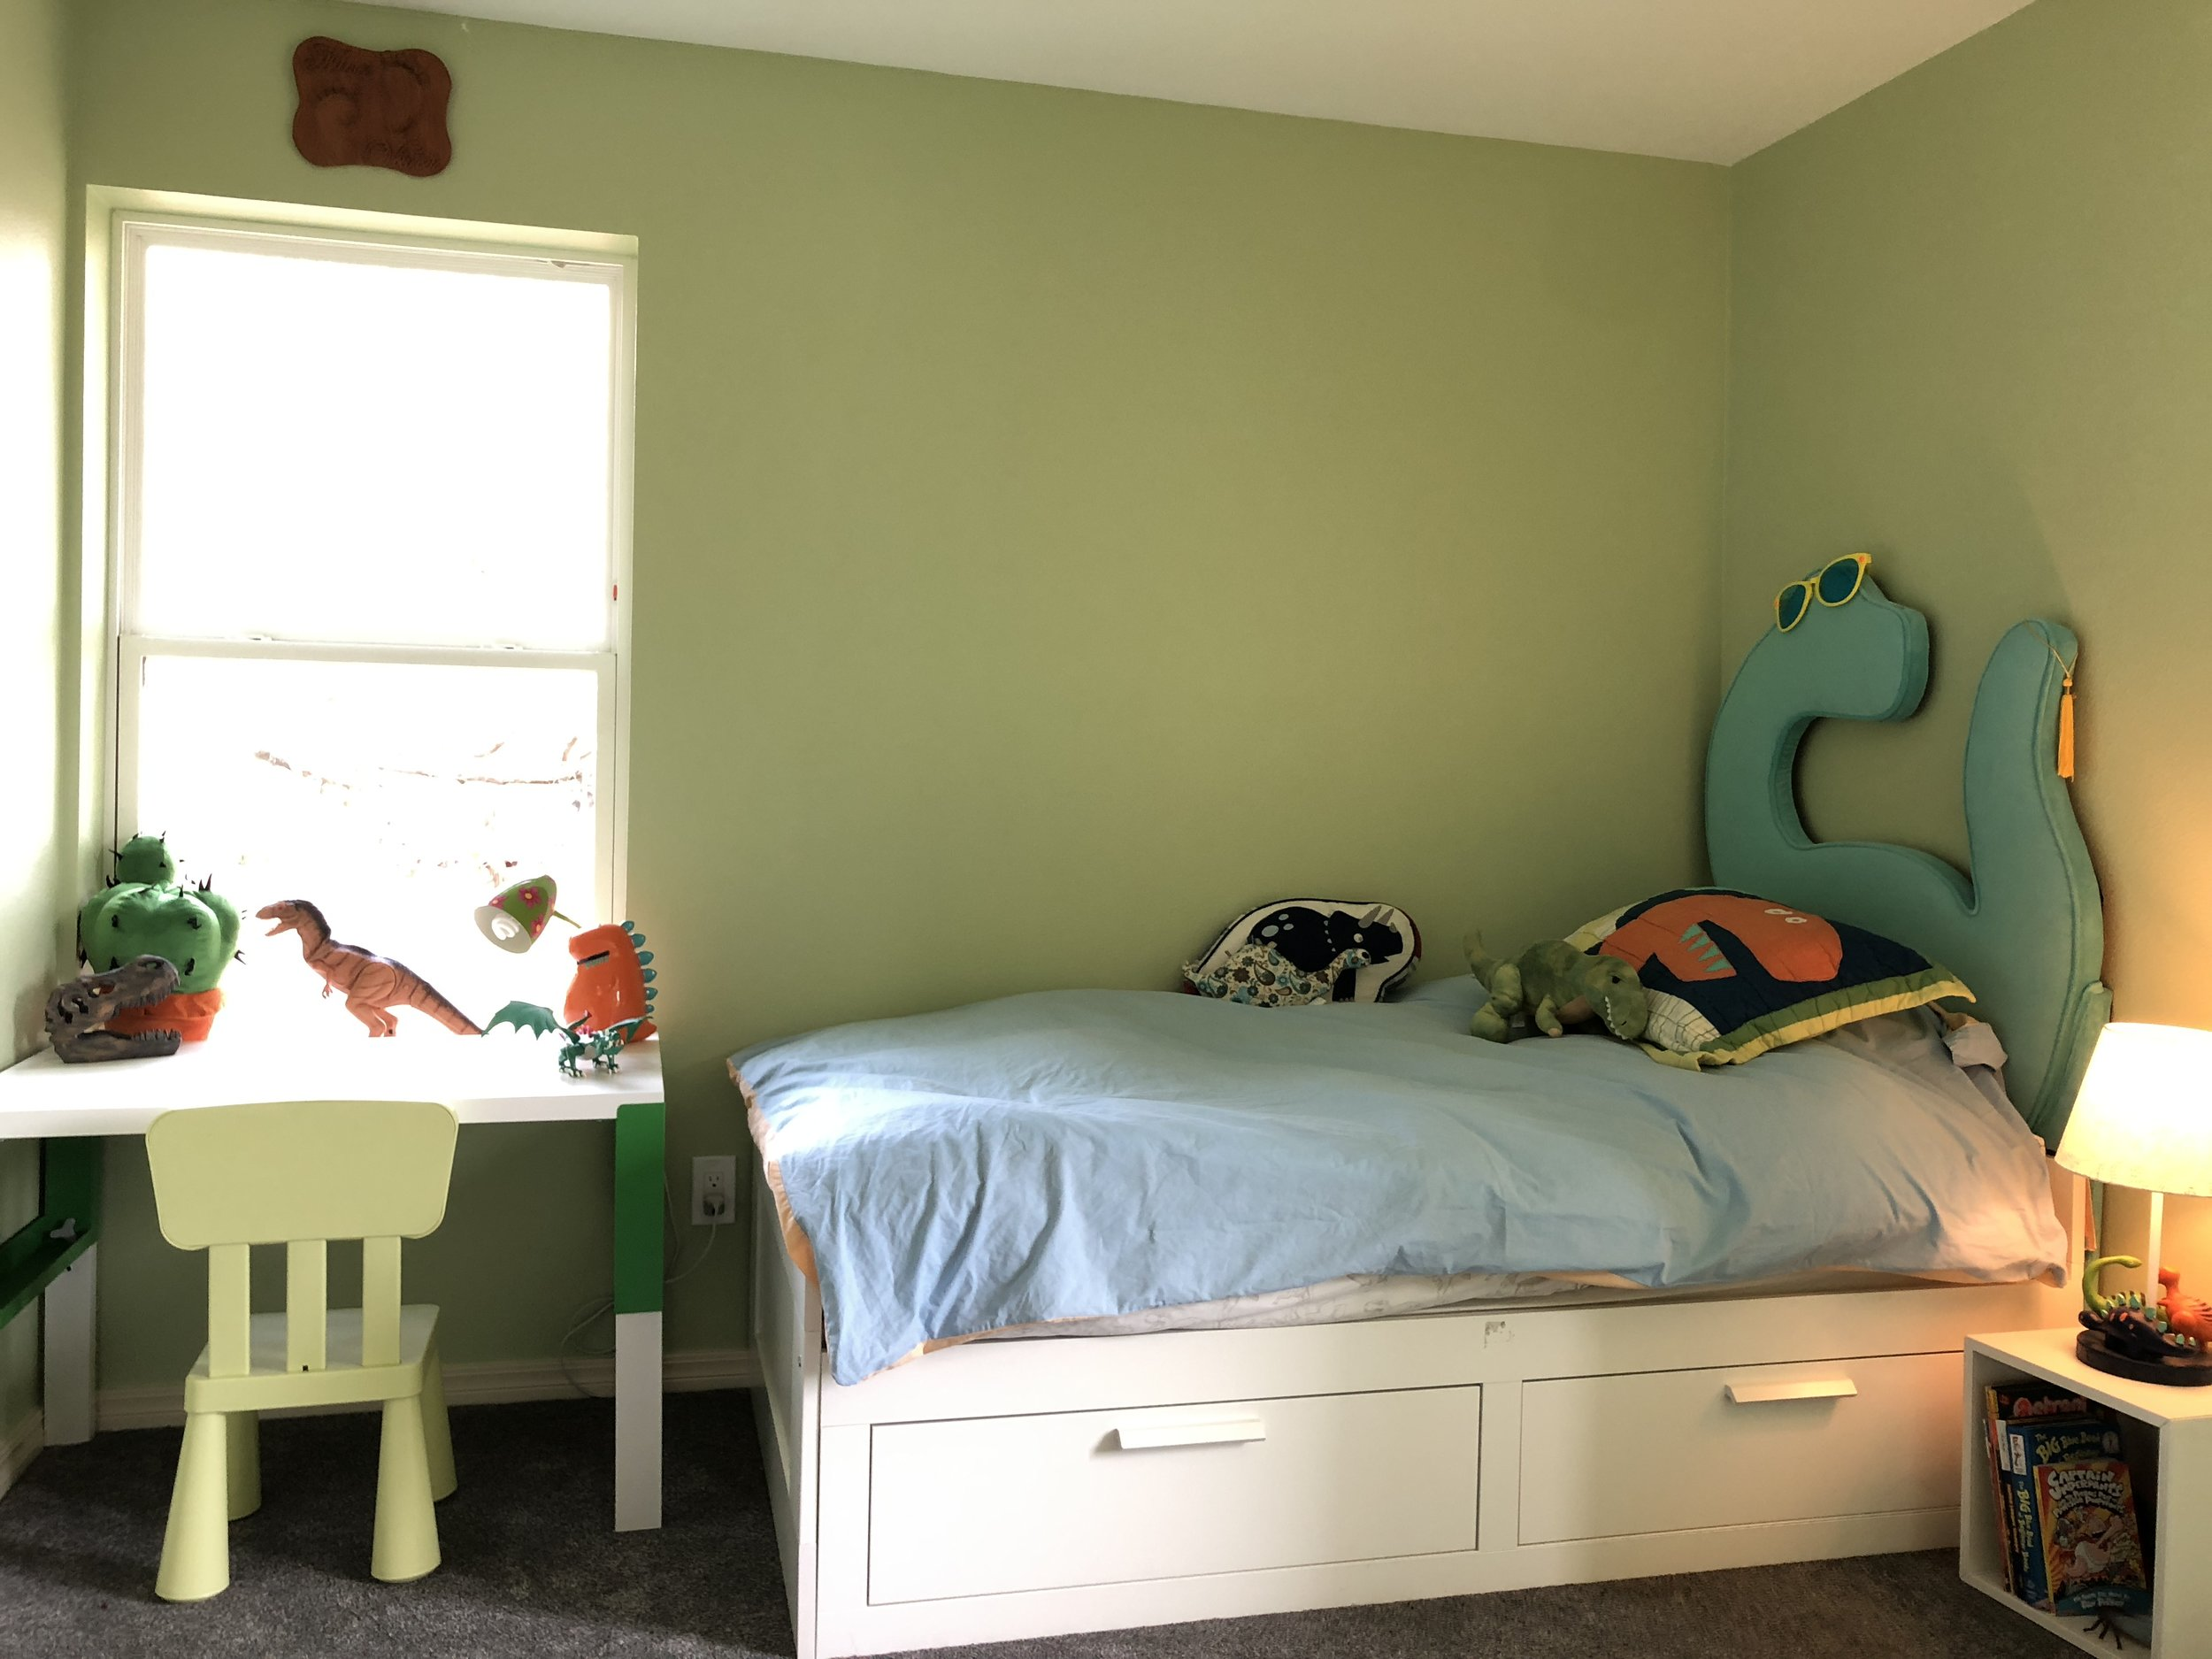 Kid's bedroom with reading nook